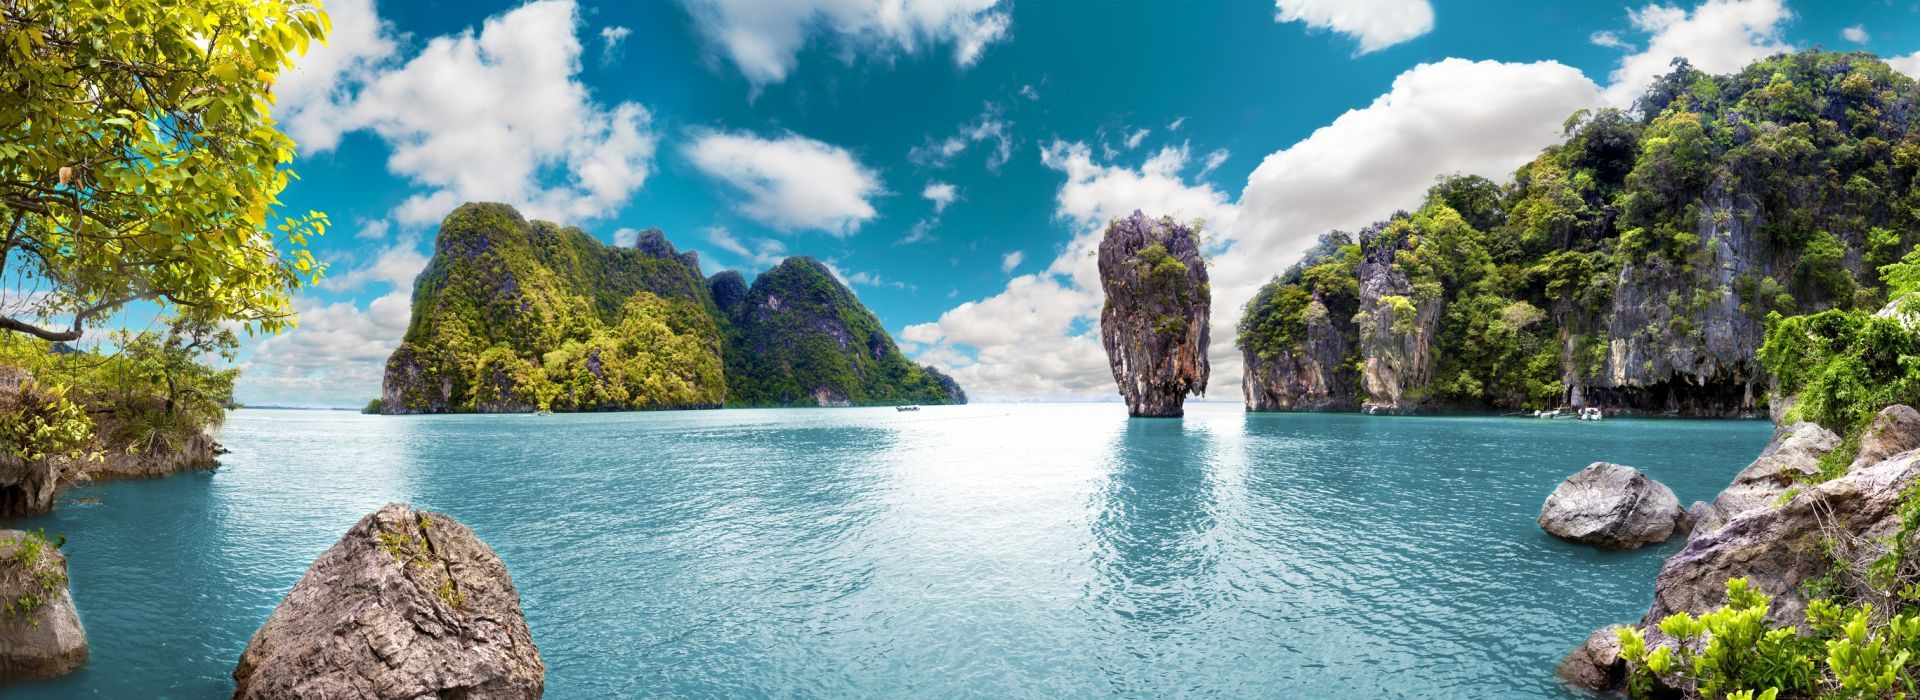 Cultural, religious and historic sites Tours in Krabi